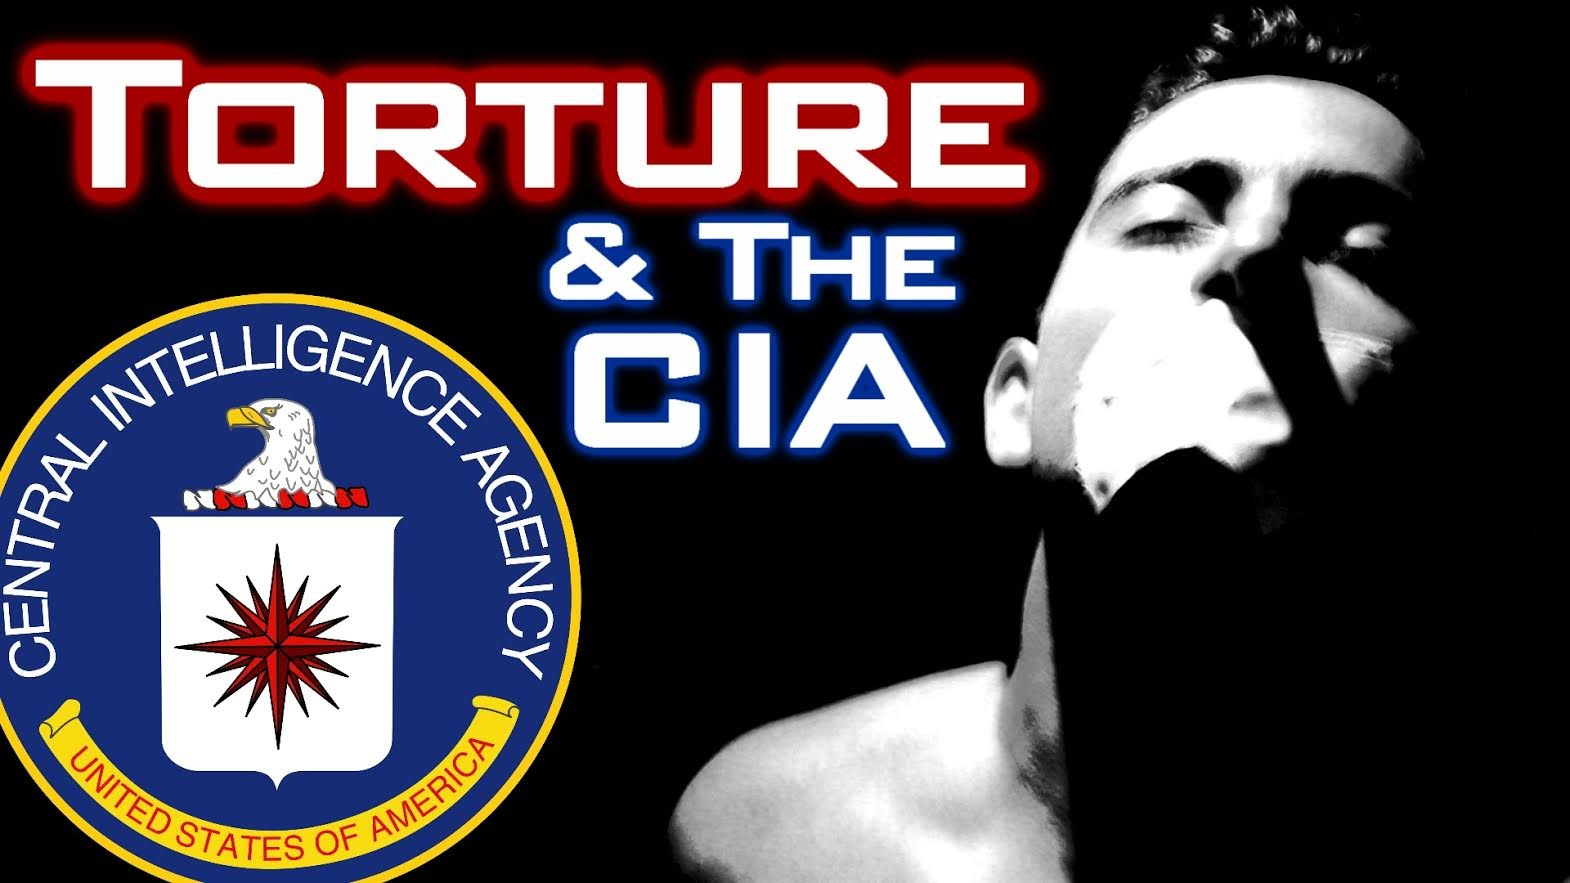 US Torture Doctors Could Face Charges After Report Alleges Post-9/11 'Collusion'